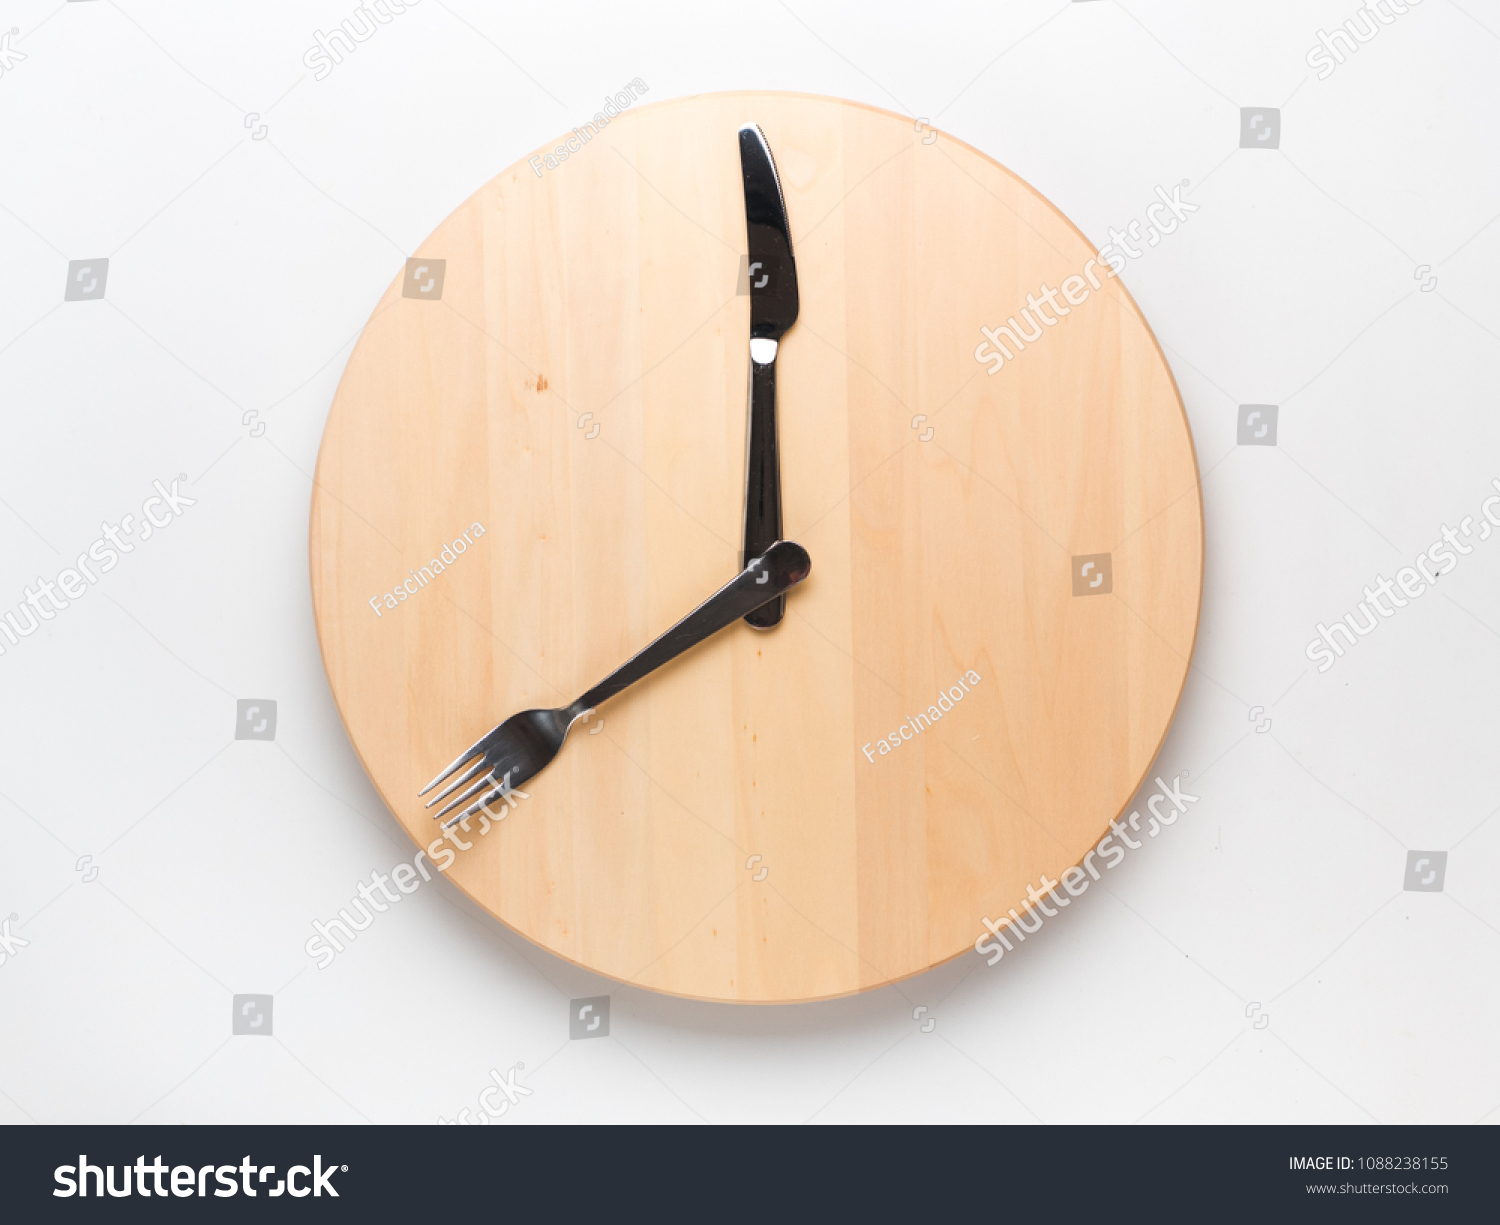 Intermittent fasting and skip breakfast concept - empty wooden round tray or trencher with cutlery as clock hands on white background. Eight hour feeding window concept or breakfast time concept #1088238155